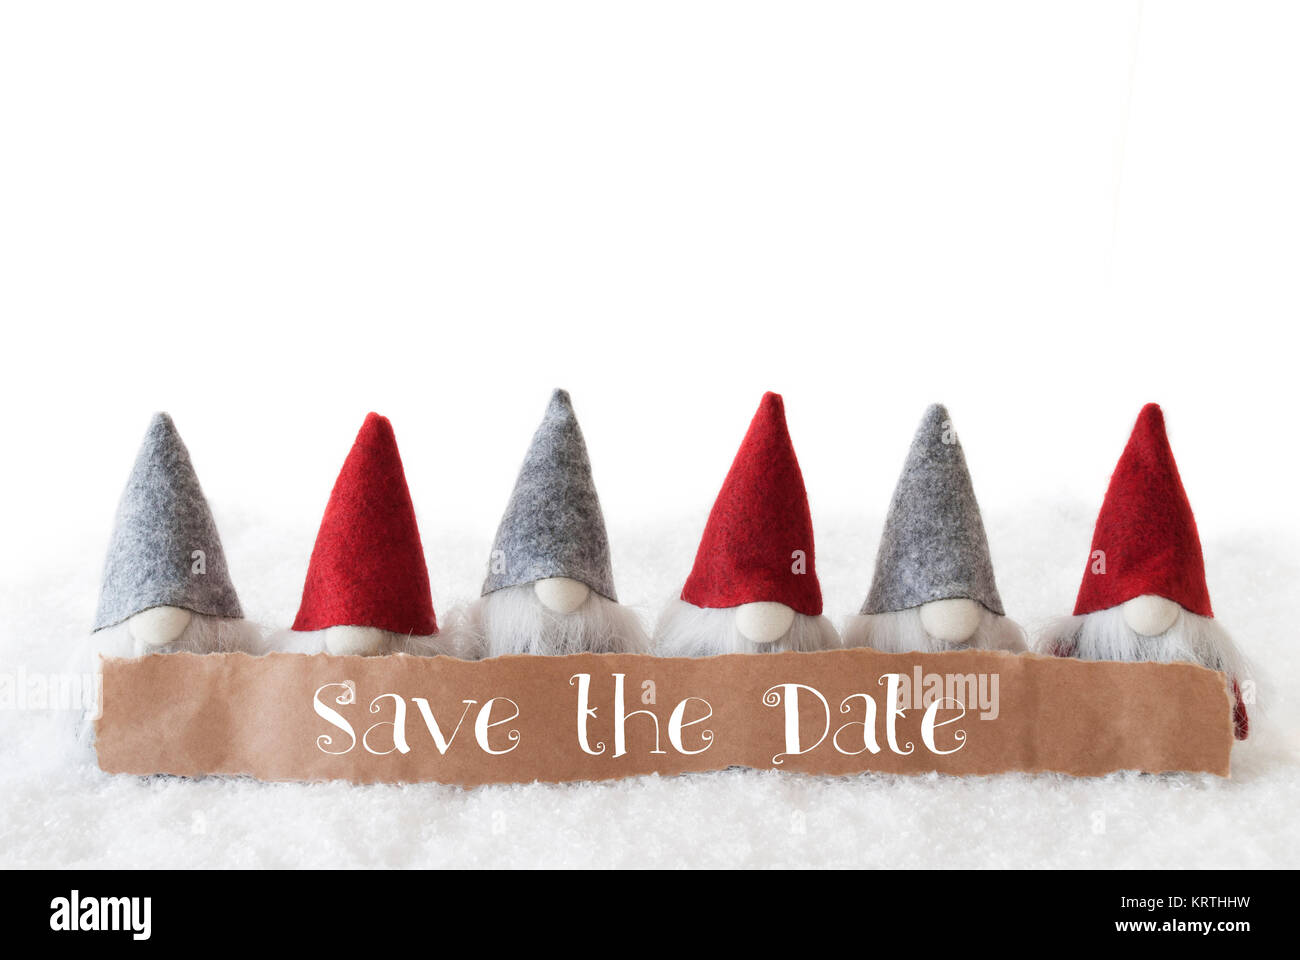 Christmas Save The Date.Label With English Text Save The Date Christmas Greeting